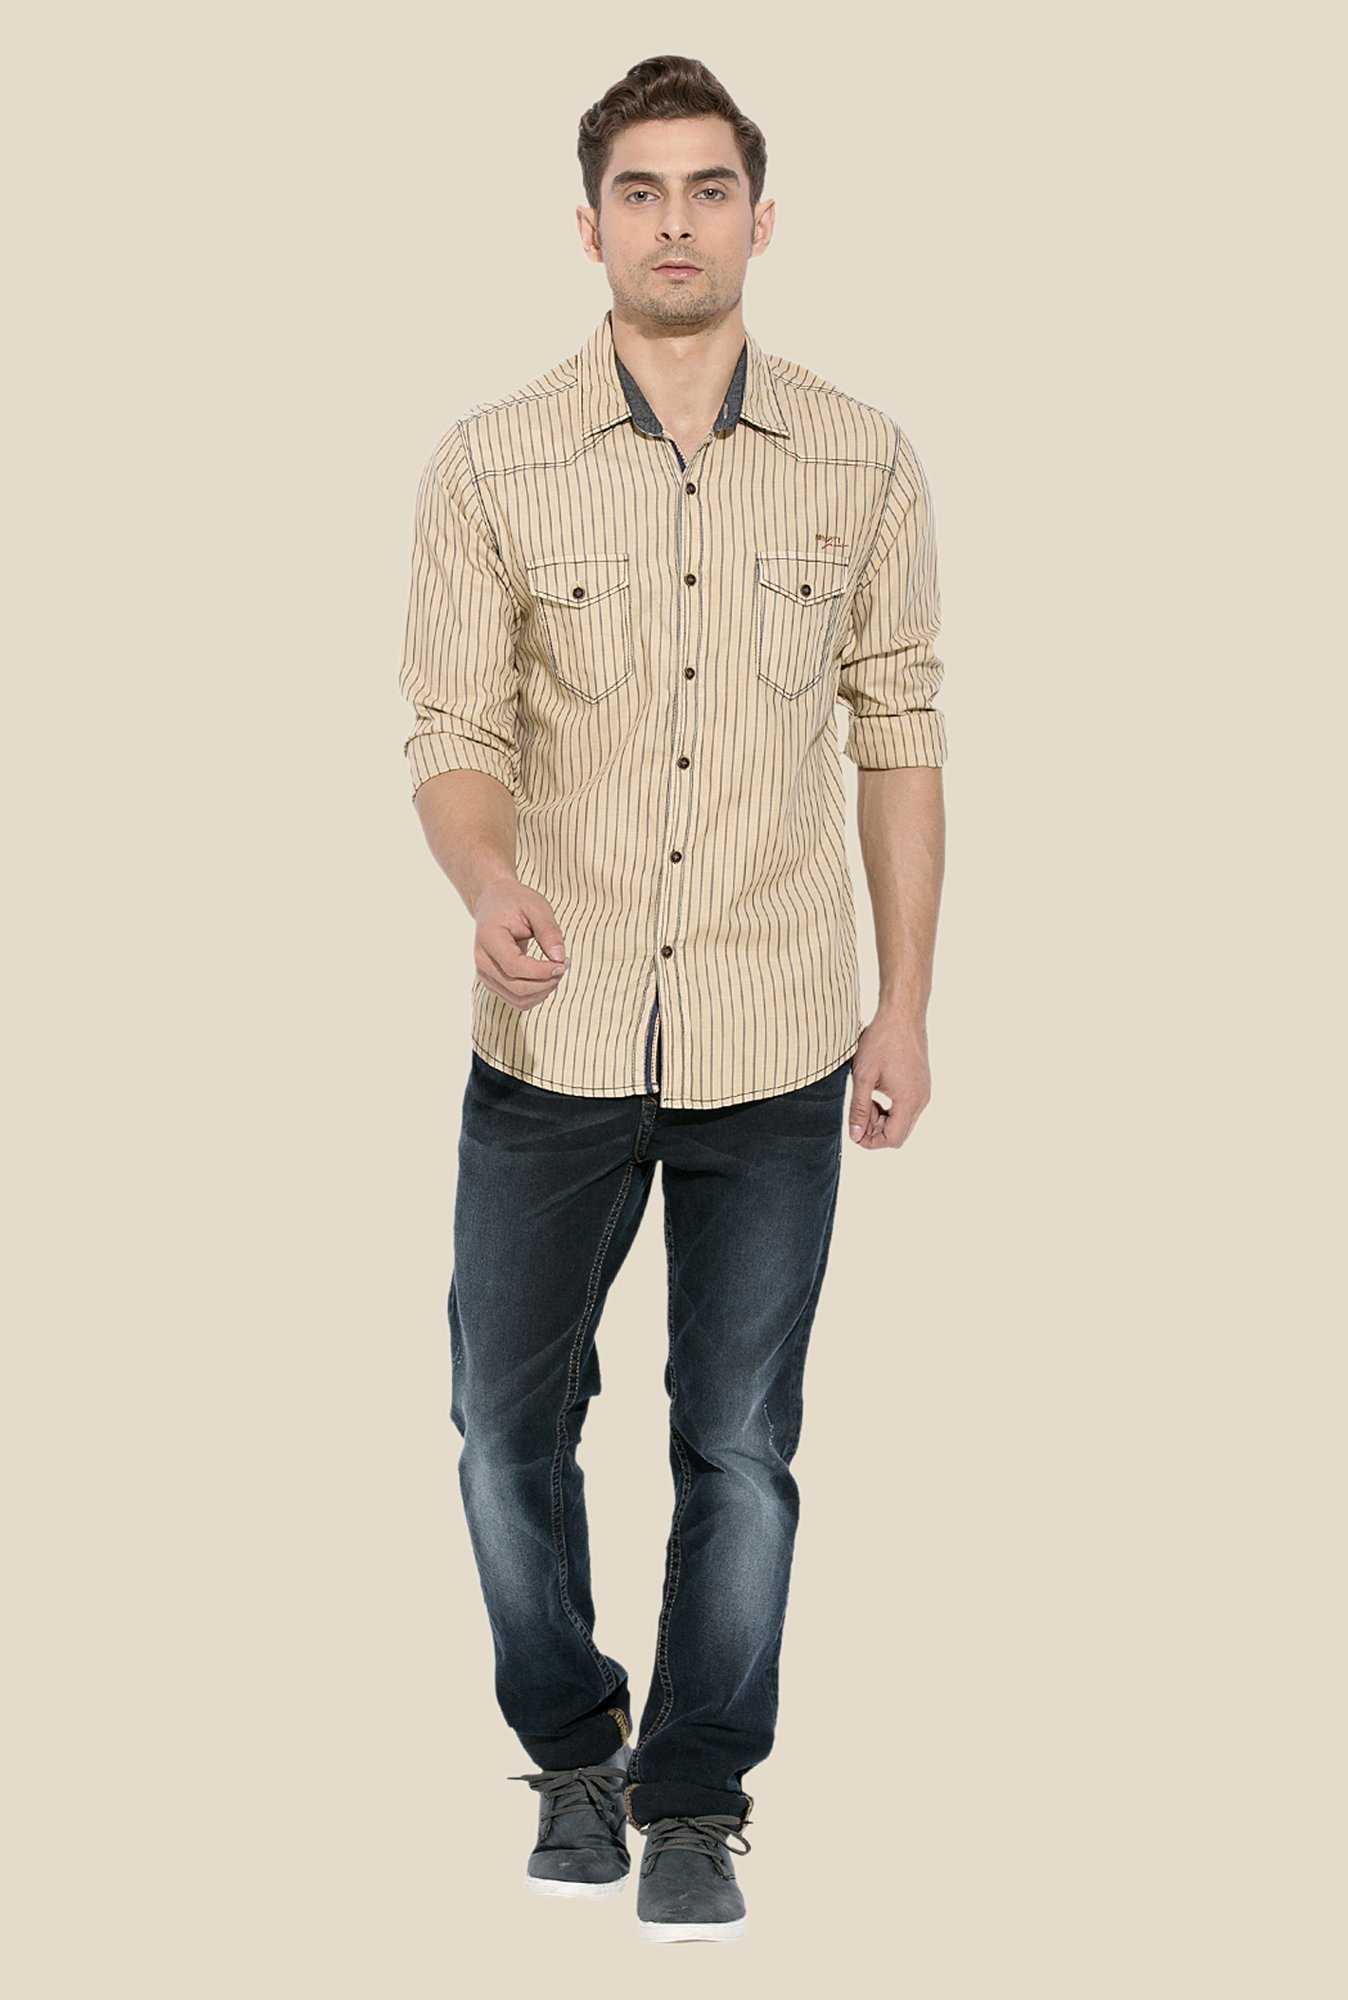 Mufti Khaki Striped Shirt